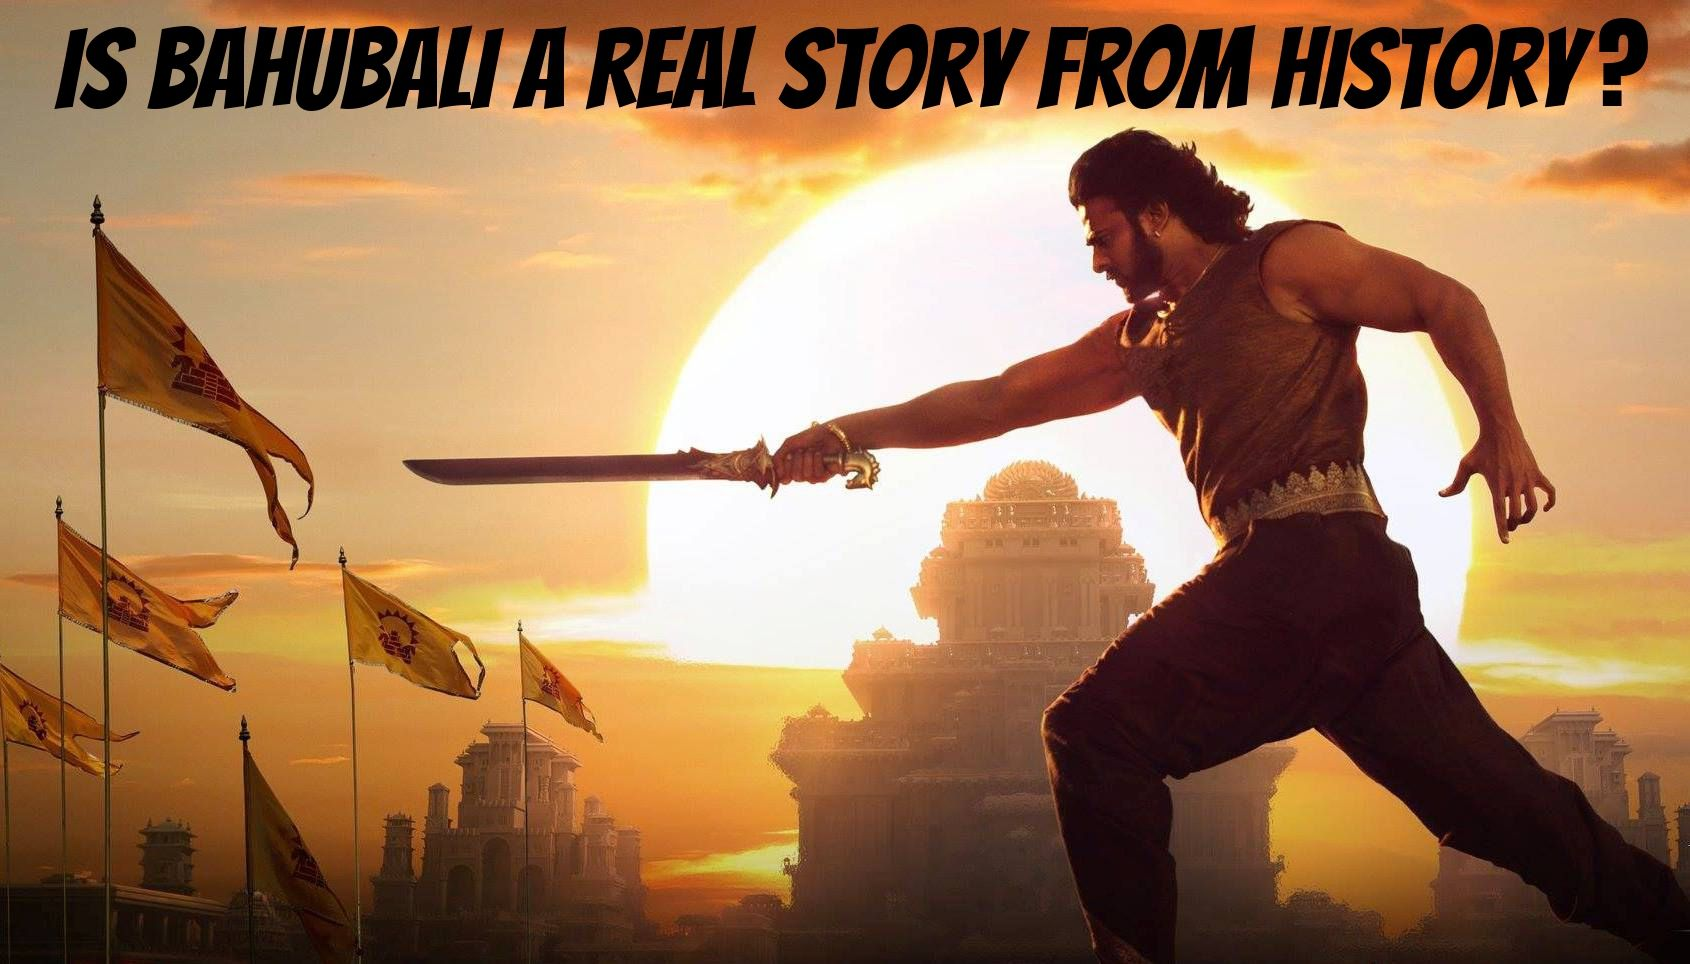 Is Bahubali a Real Story from History